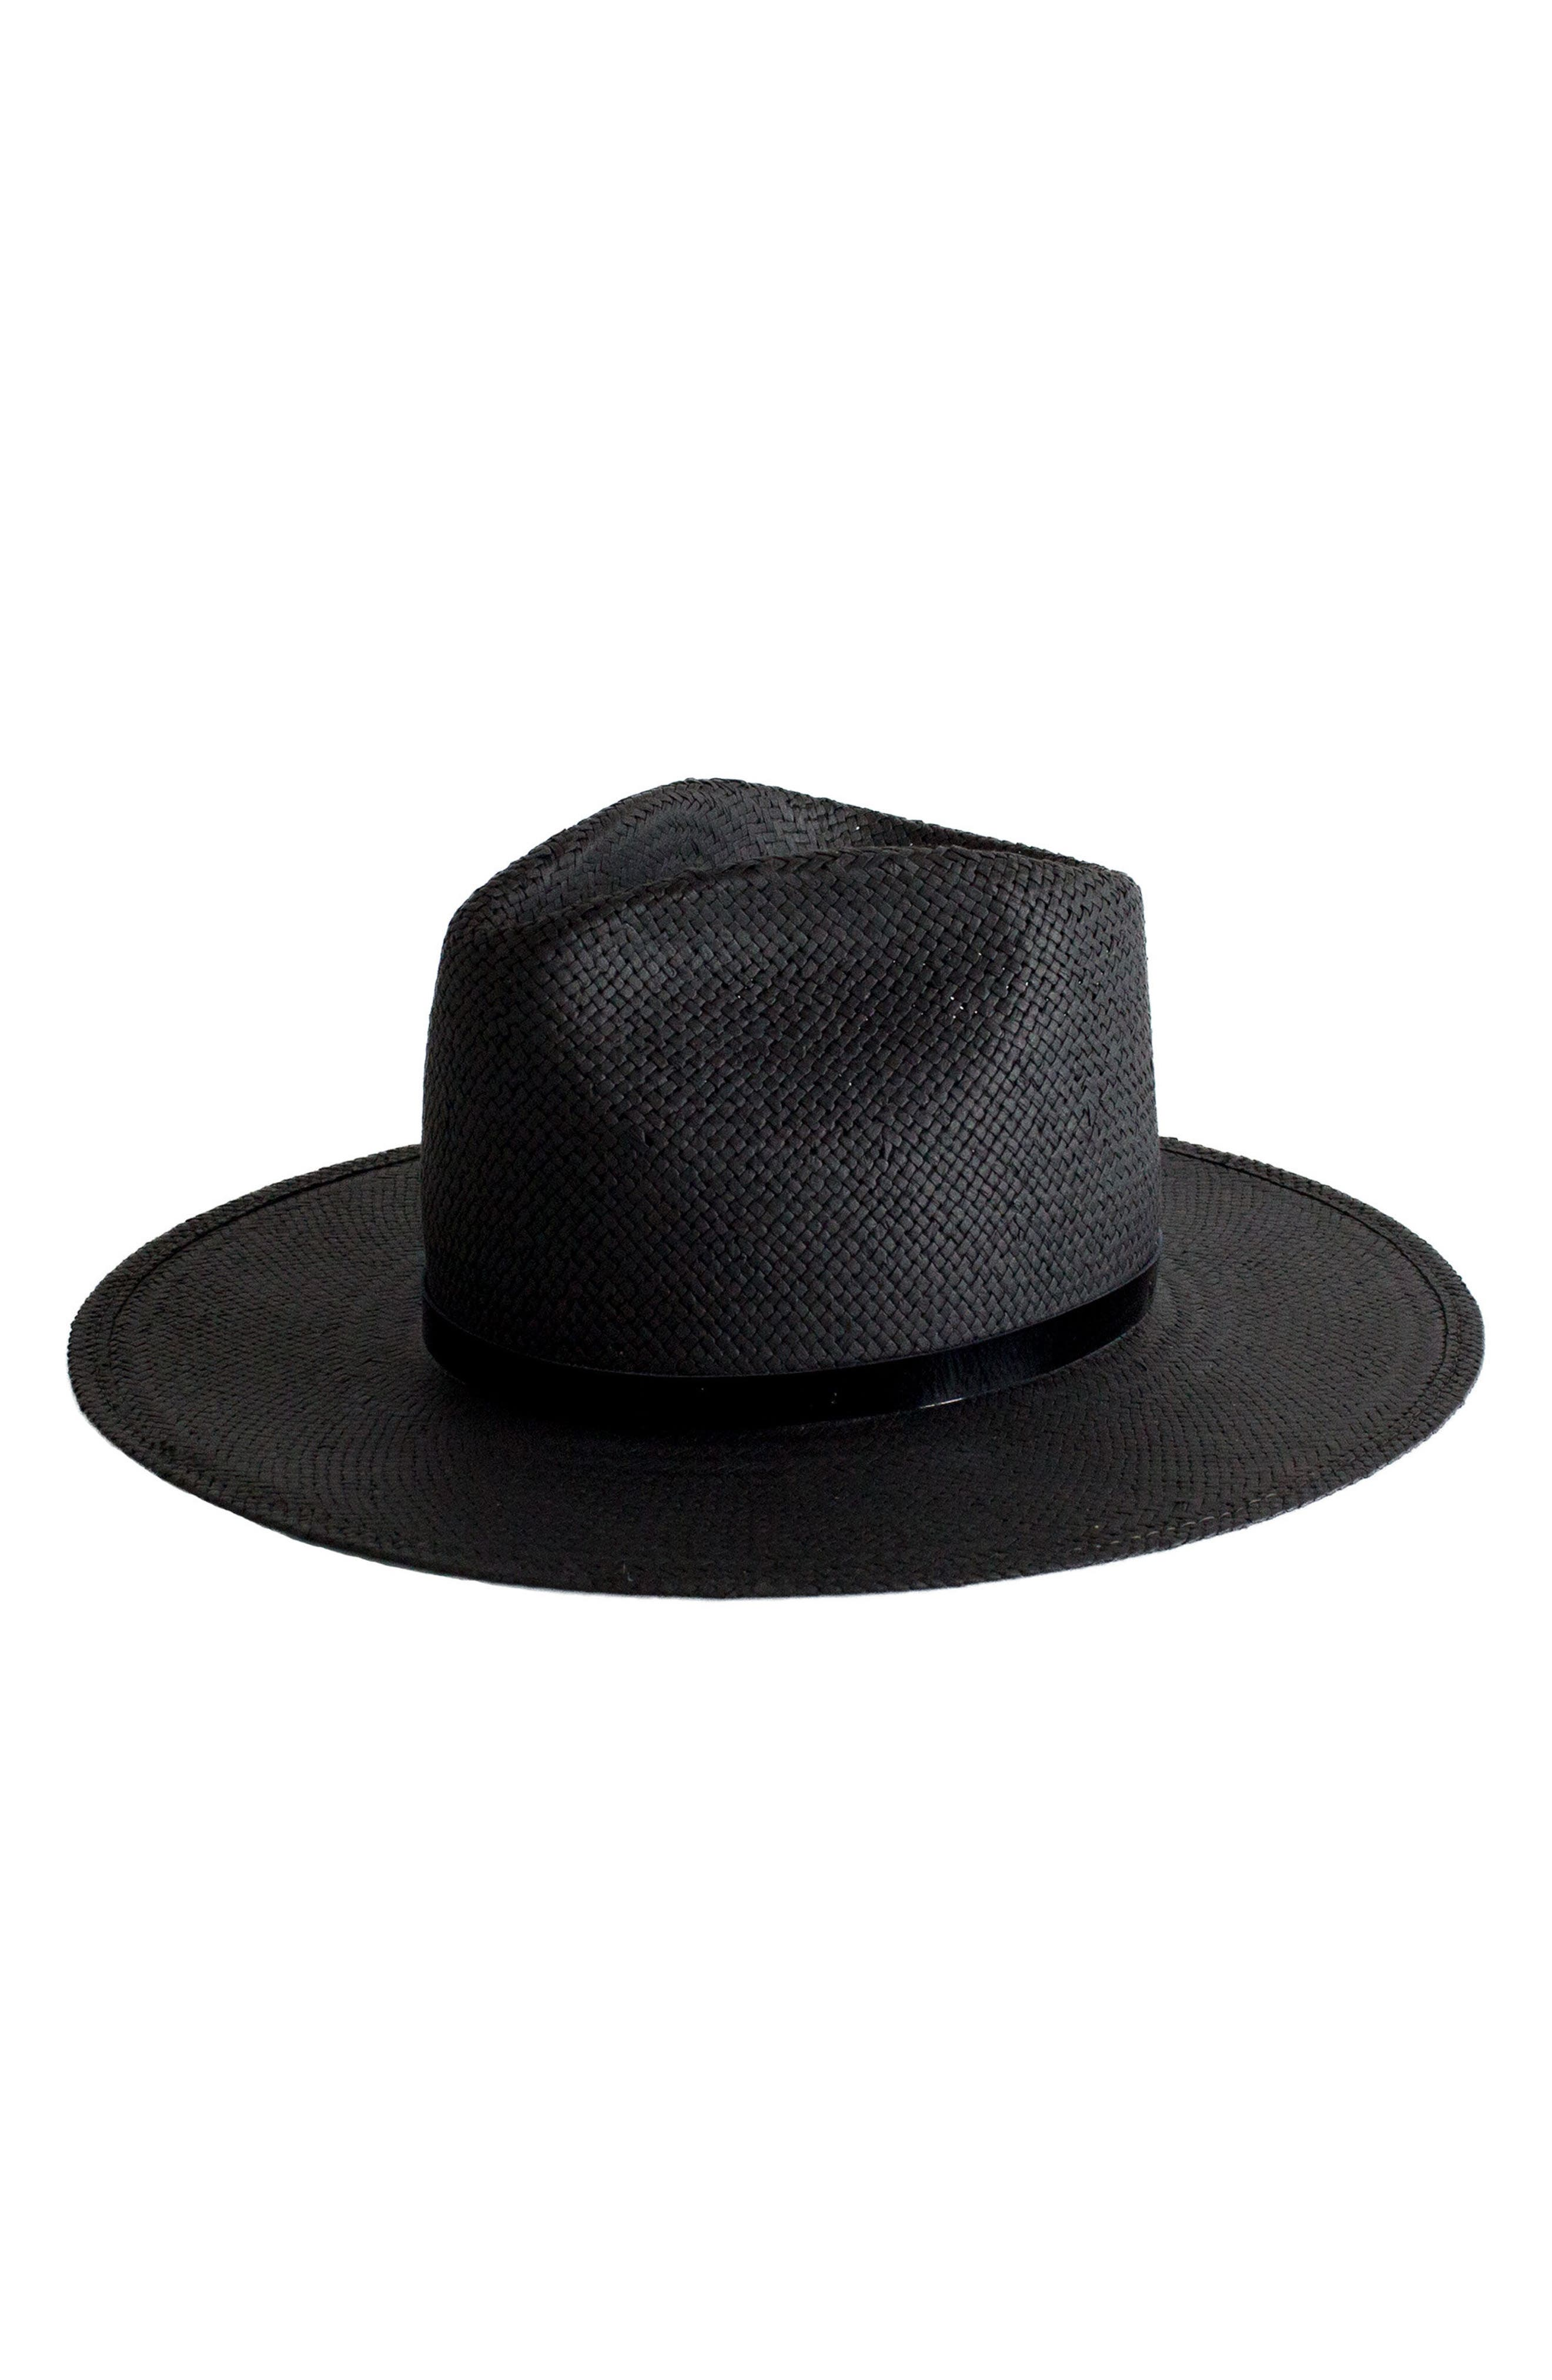 Lex Packable Straw Fedora,                         Main,                         color, Black